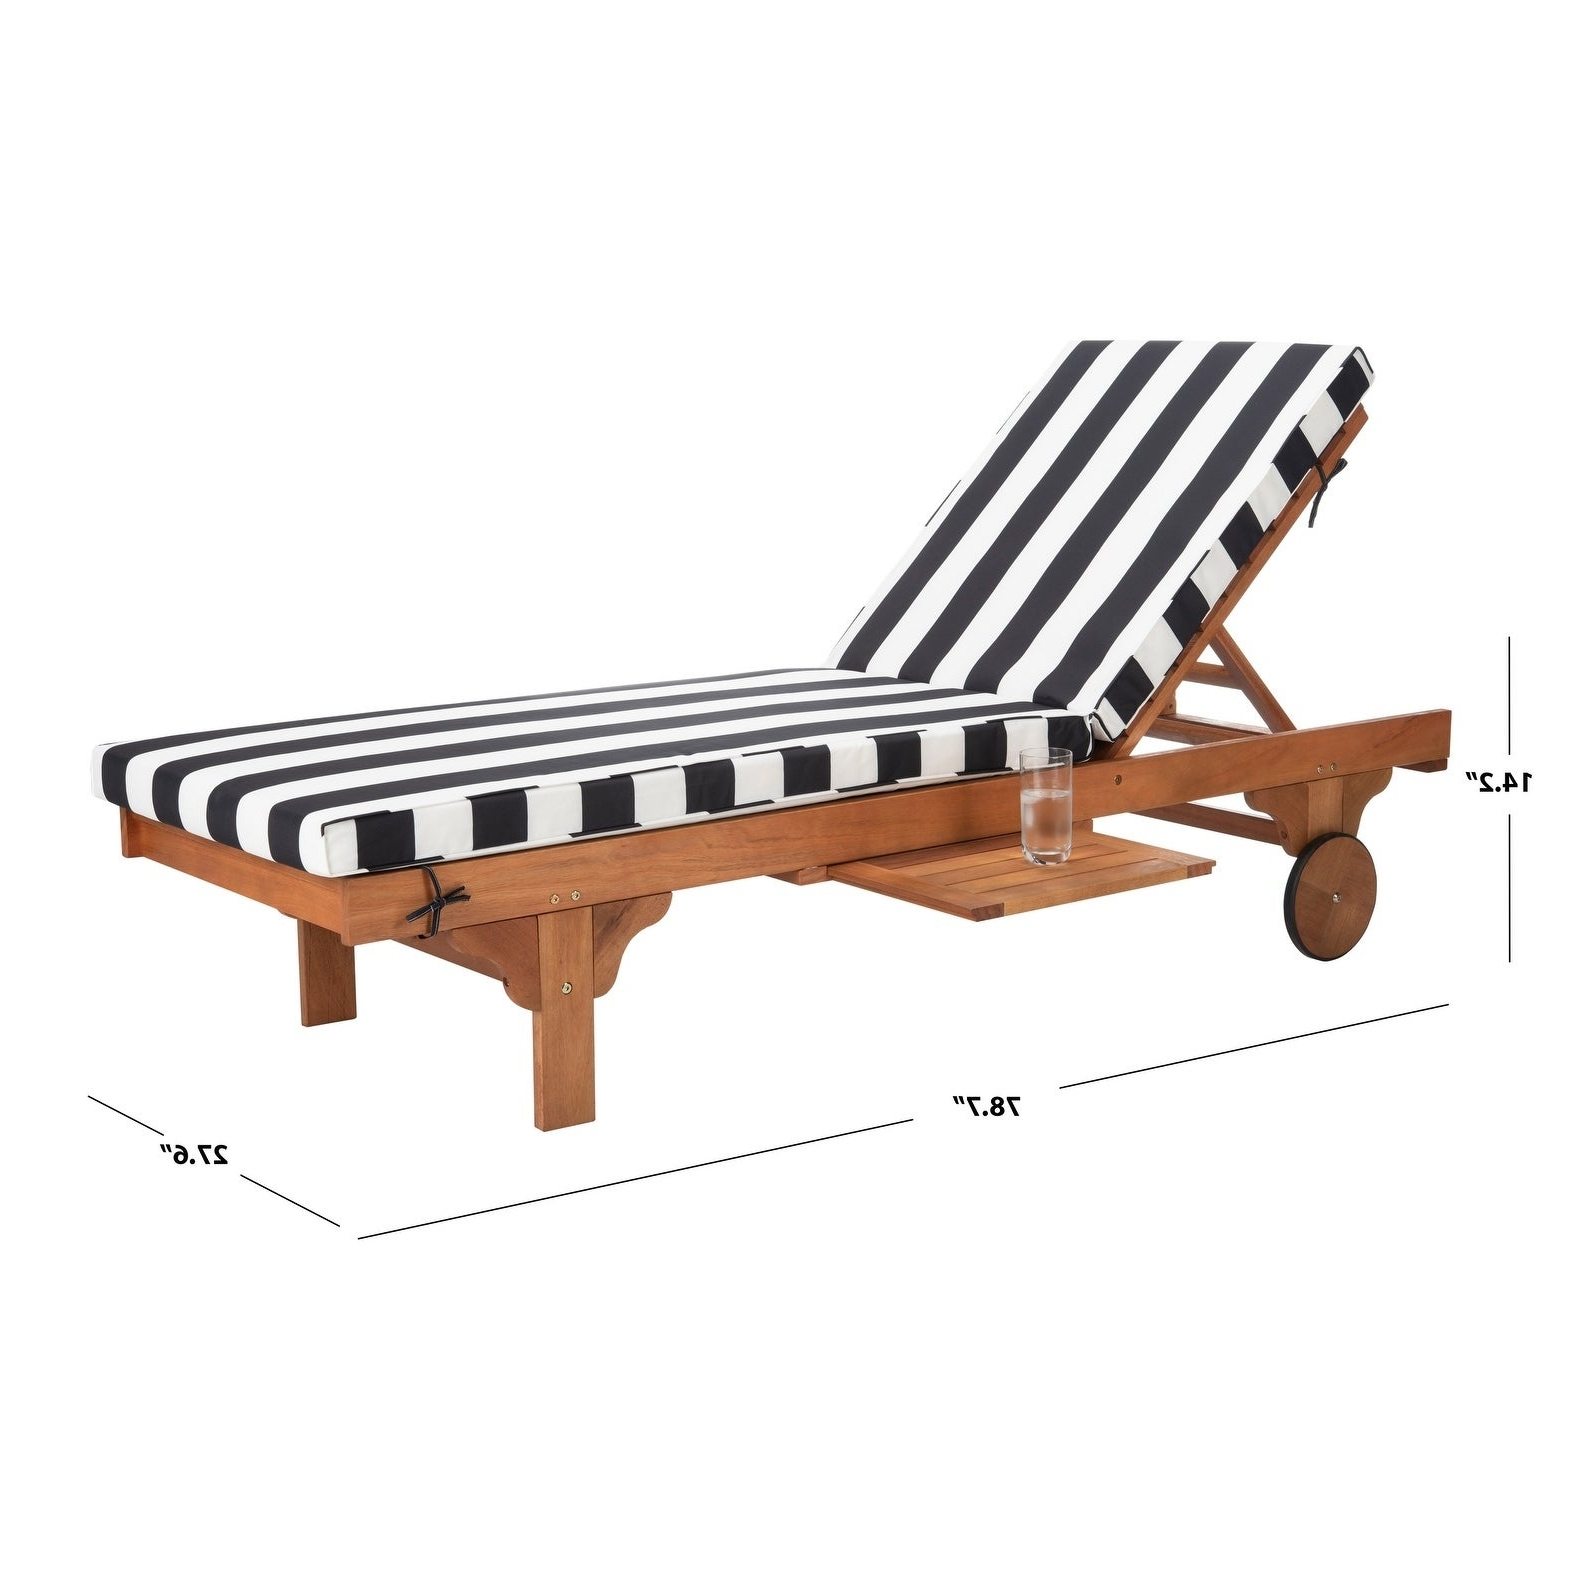 """2020 Outdoor Cart Wheel Adjustable Chaise Lounge Chairs Intended For Safavieh Outdoor Living Newport Ash Black/ White Stripe Cart Wheel  Adjustable Chaise Lounge Chair – 27.6"""" X 78.7"""" X  (View 2 of 25)"""